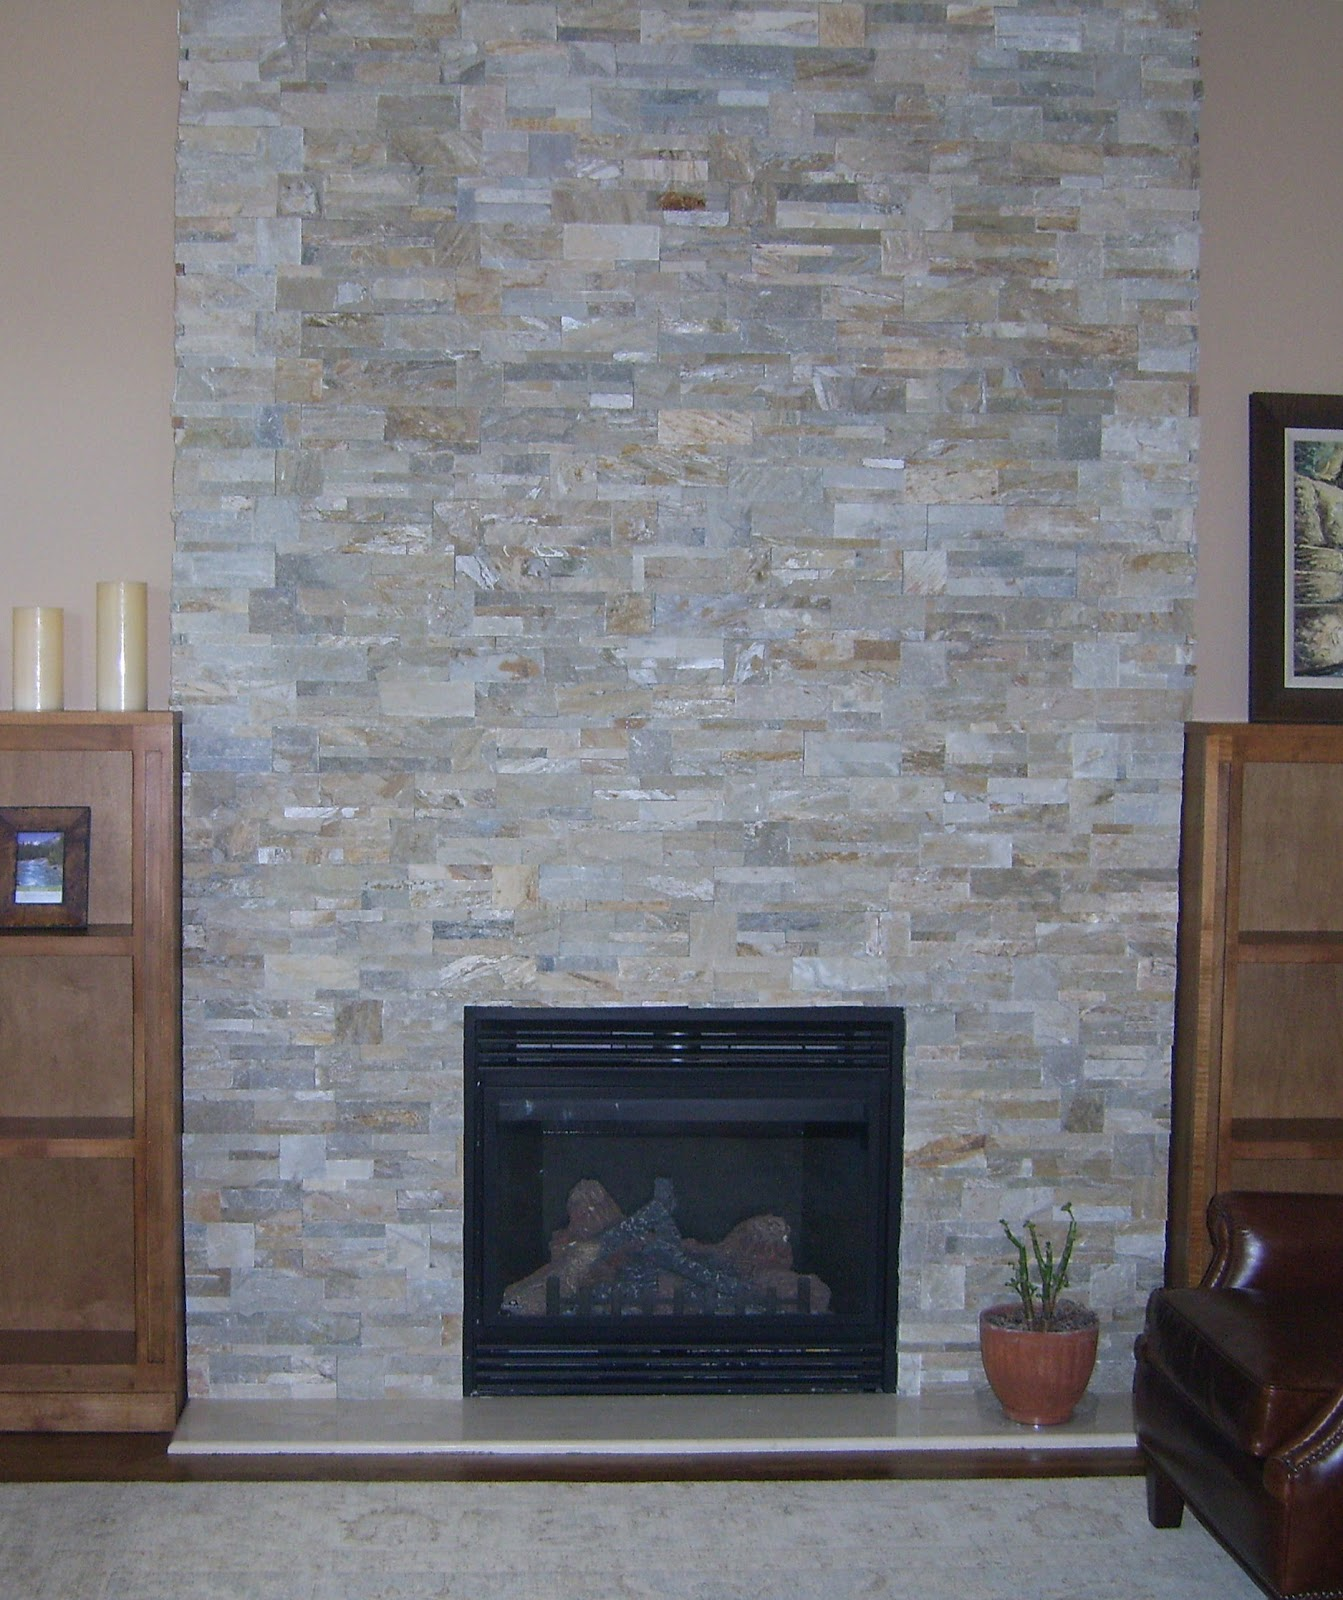 Tobi brockway interiors fireplace facades and more - Covering brick fireplace with tile ...